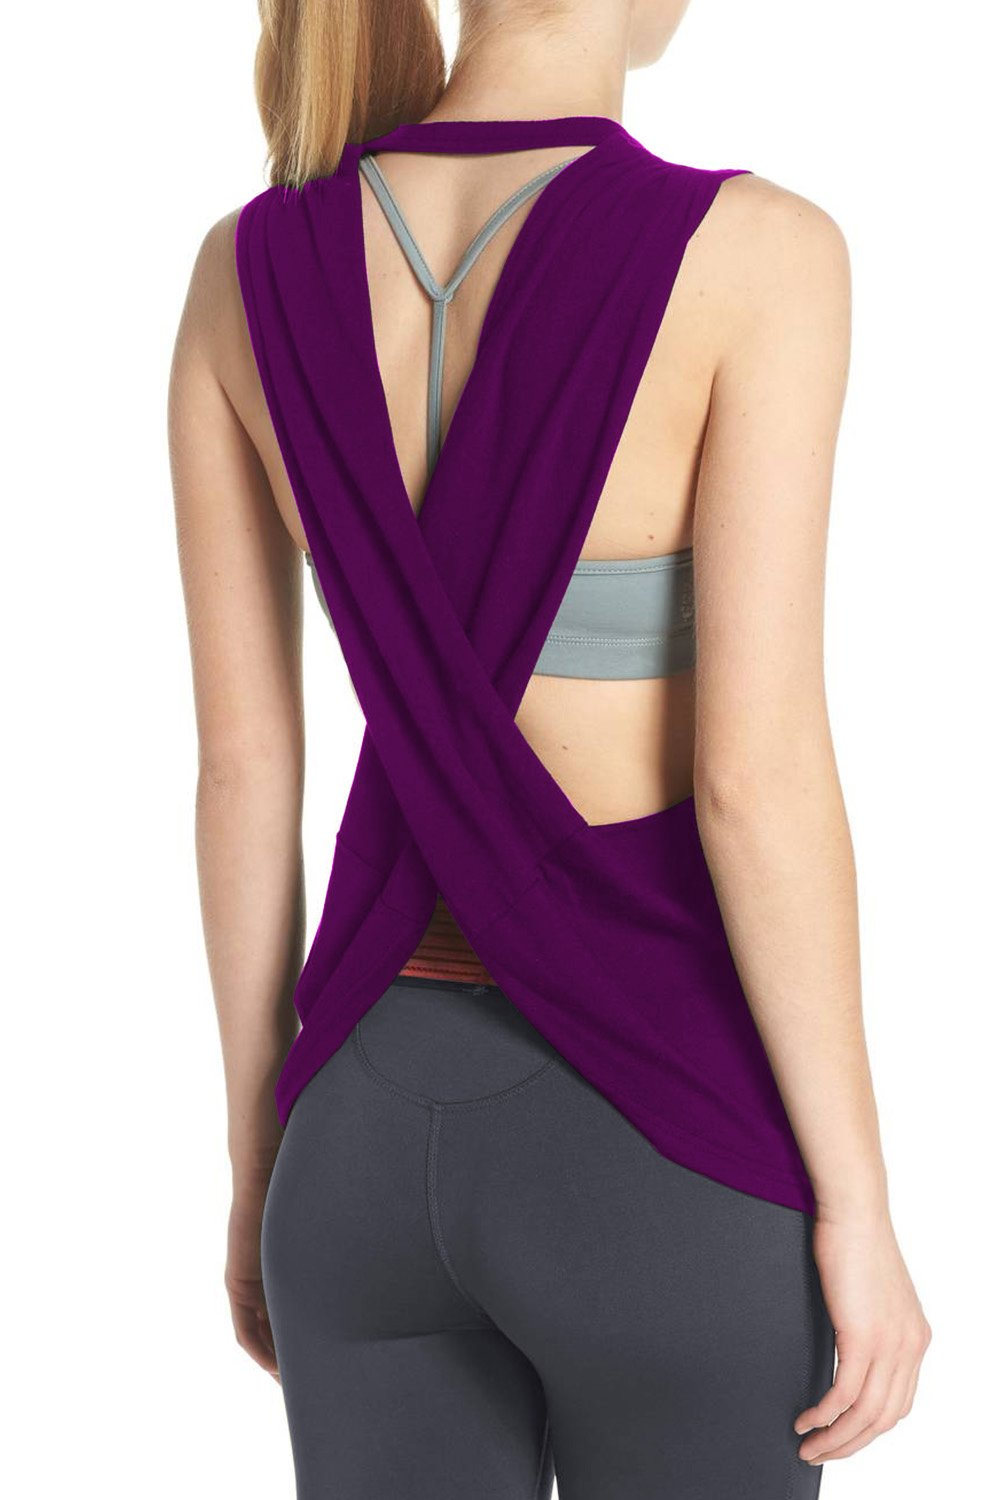 Duppoly Womens Running Tank Sleeveless Sexy Sport Tank Tops Gym Shirt Casual Knit Summer Tops 2018 Workout Clothes Purple M